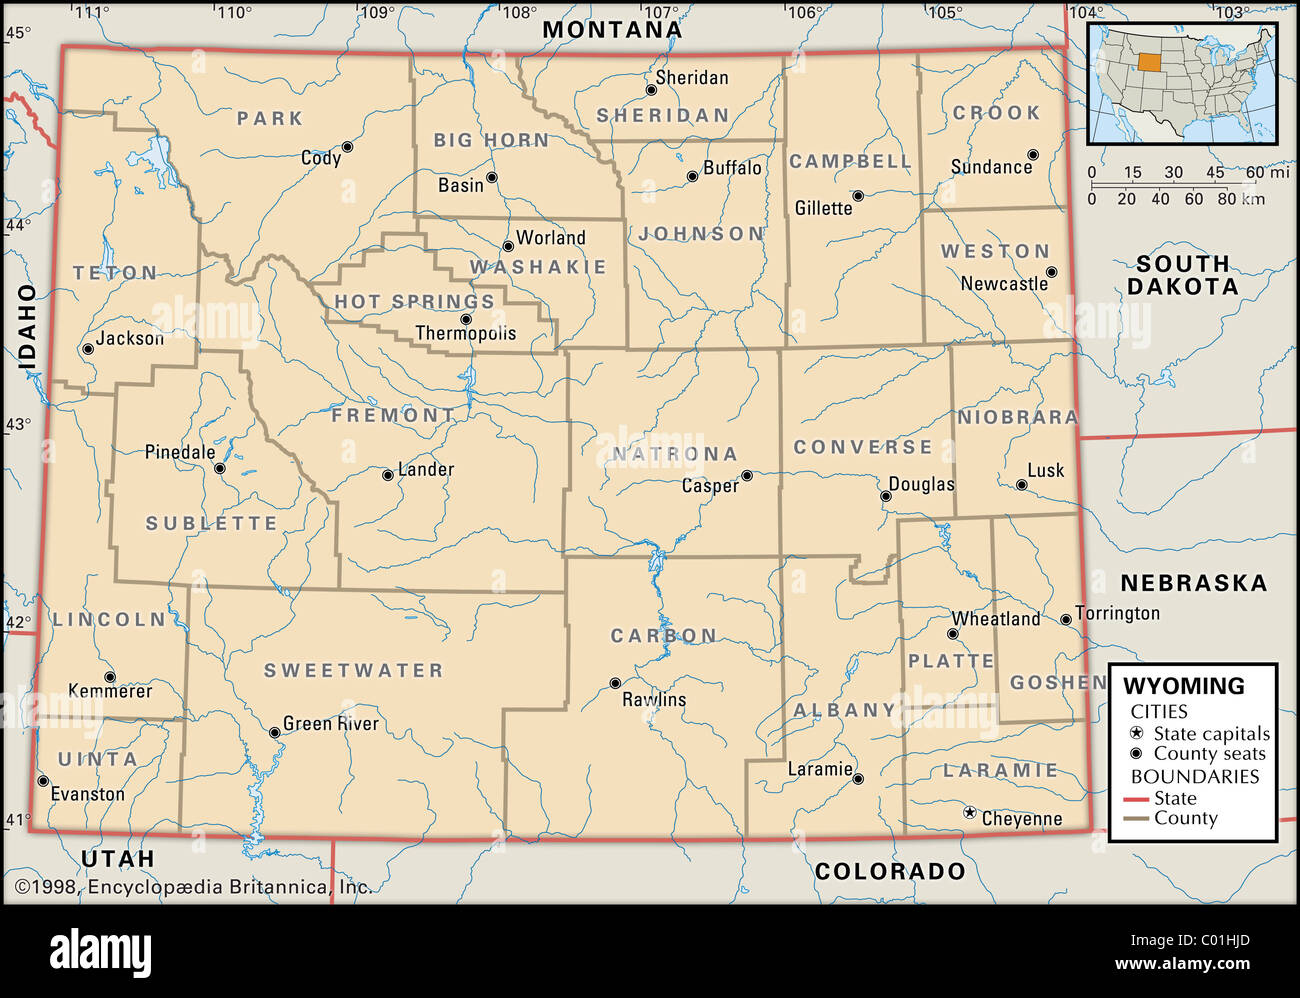 Political Map Of Wyoming Stock Photo Royalty Free Image - Montana political map